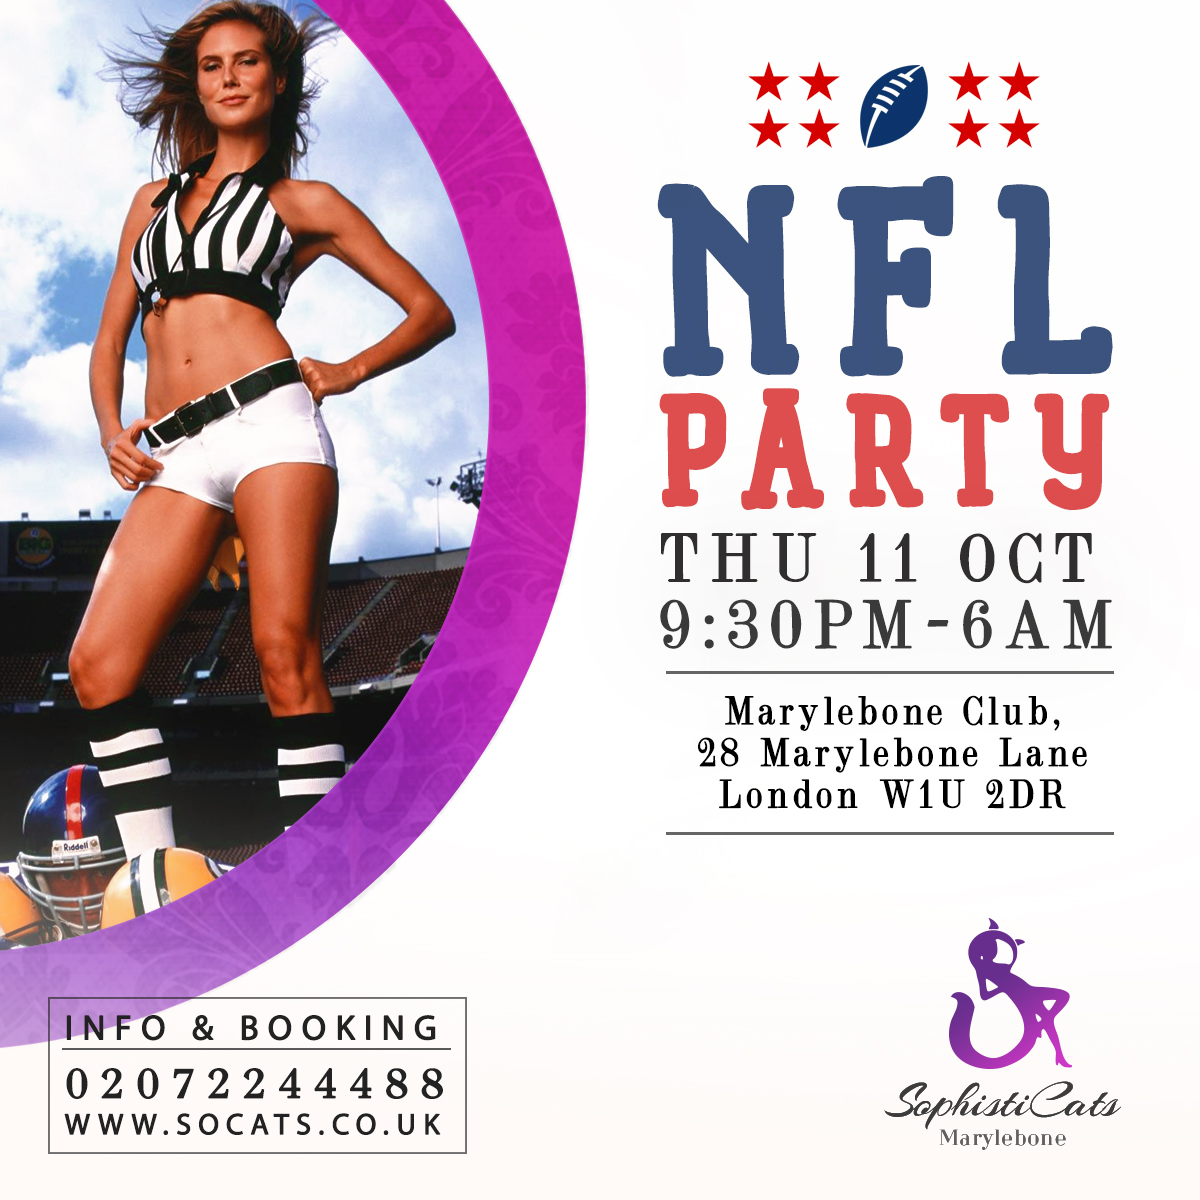 NFL-stripclub_party_soho_marylebone_sophisticats